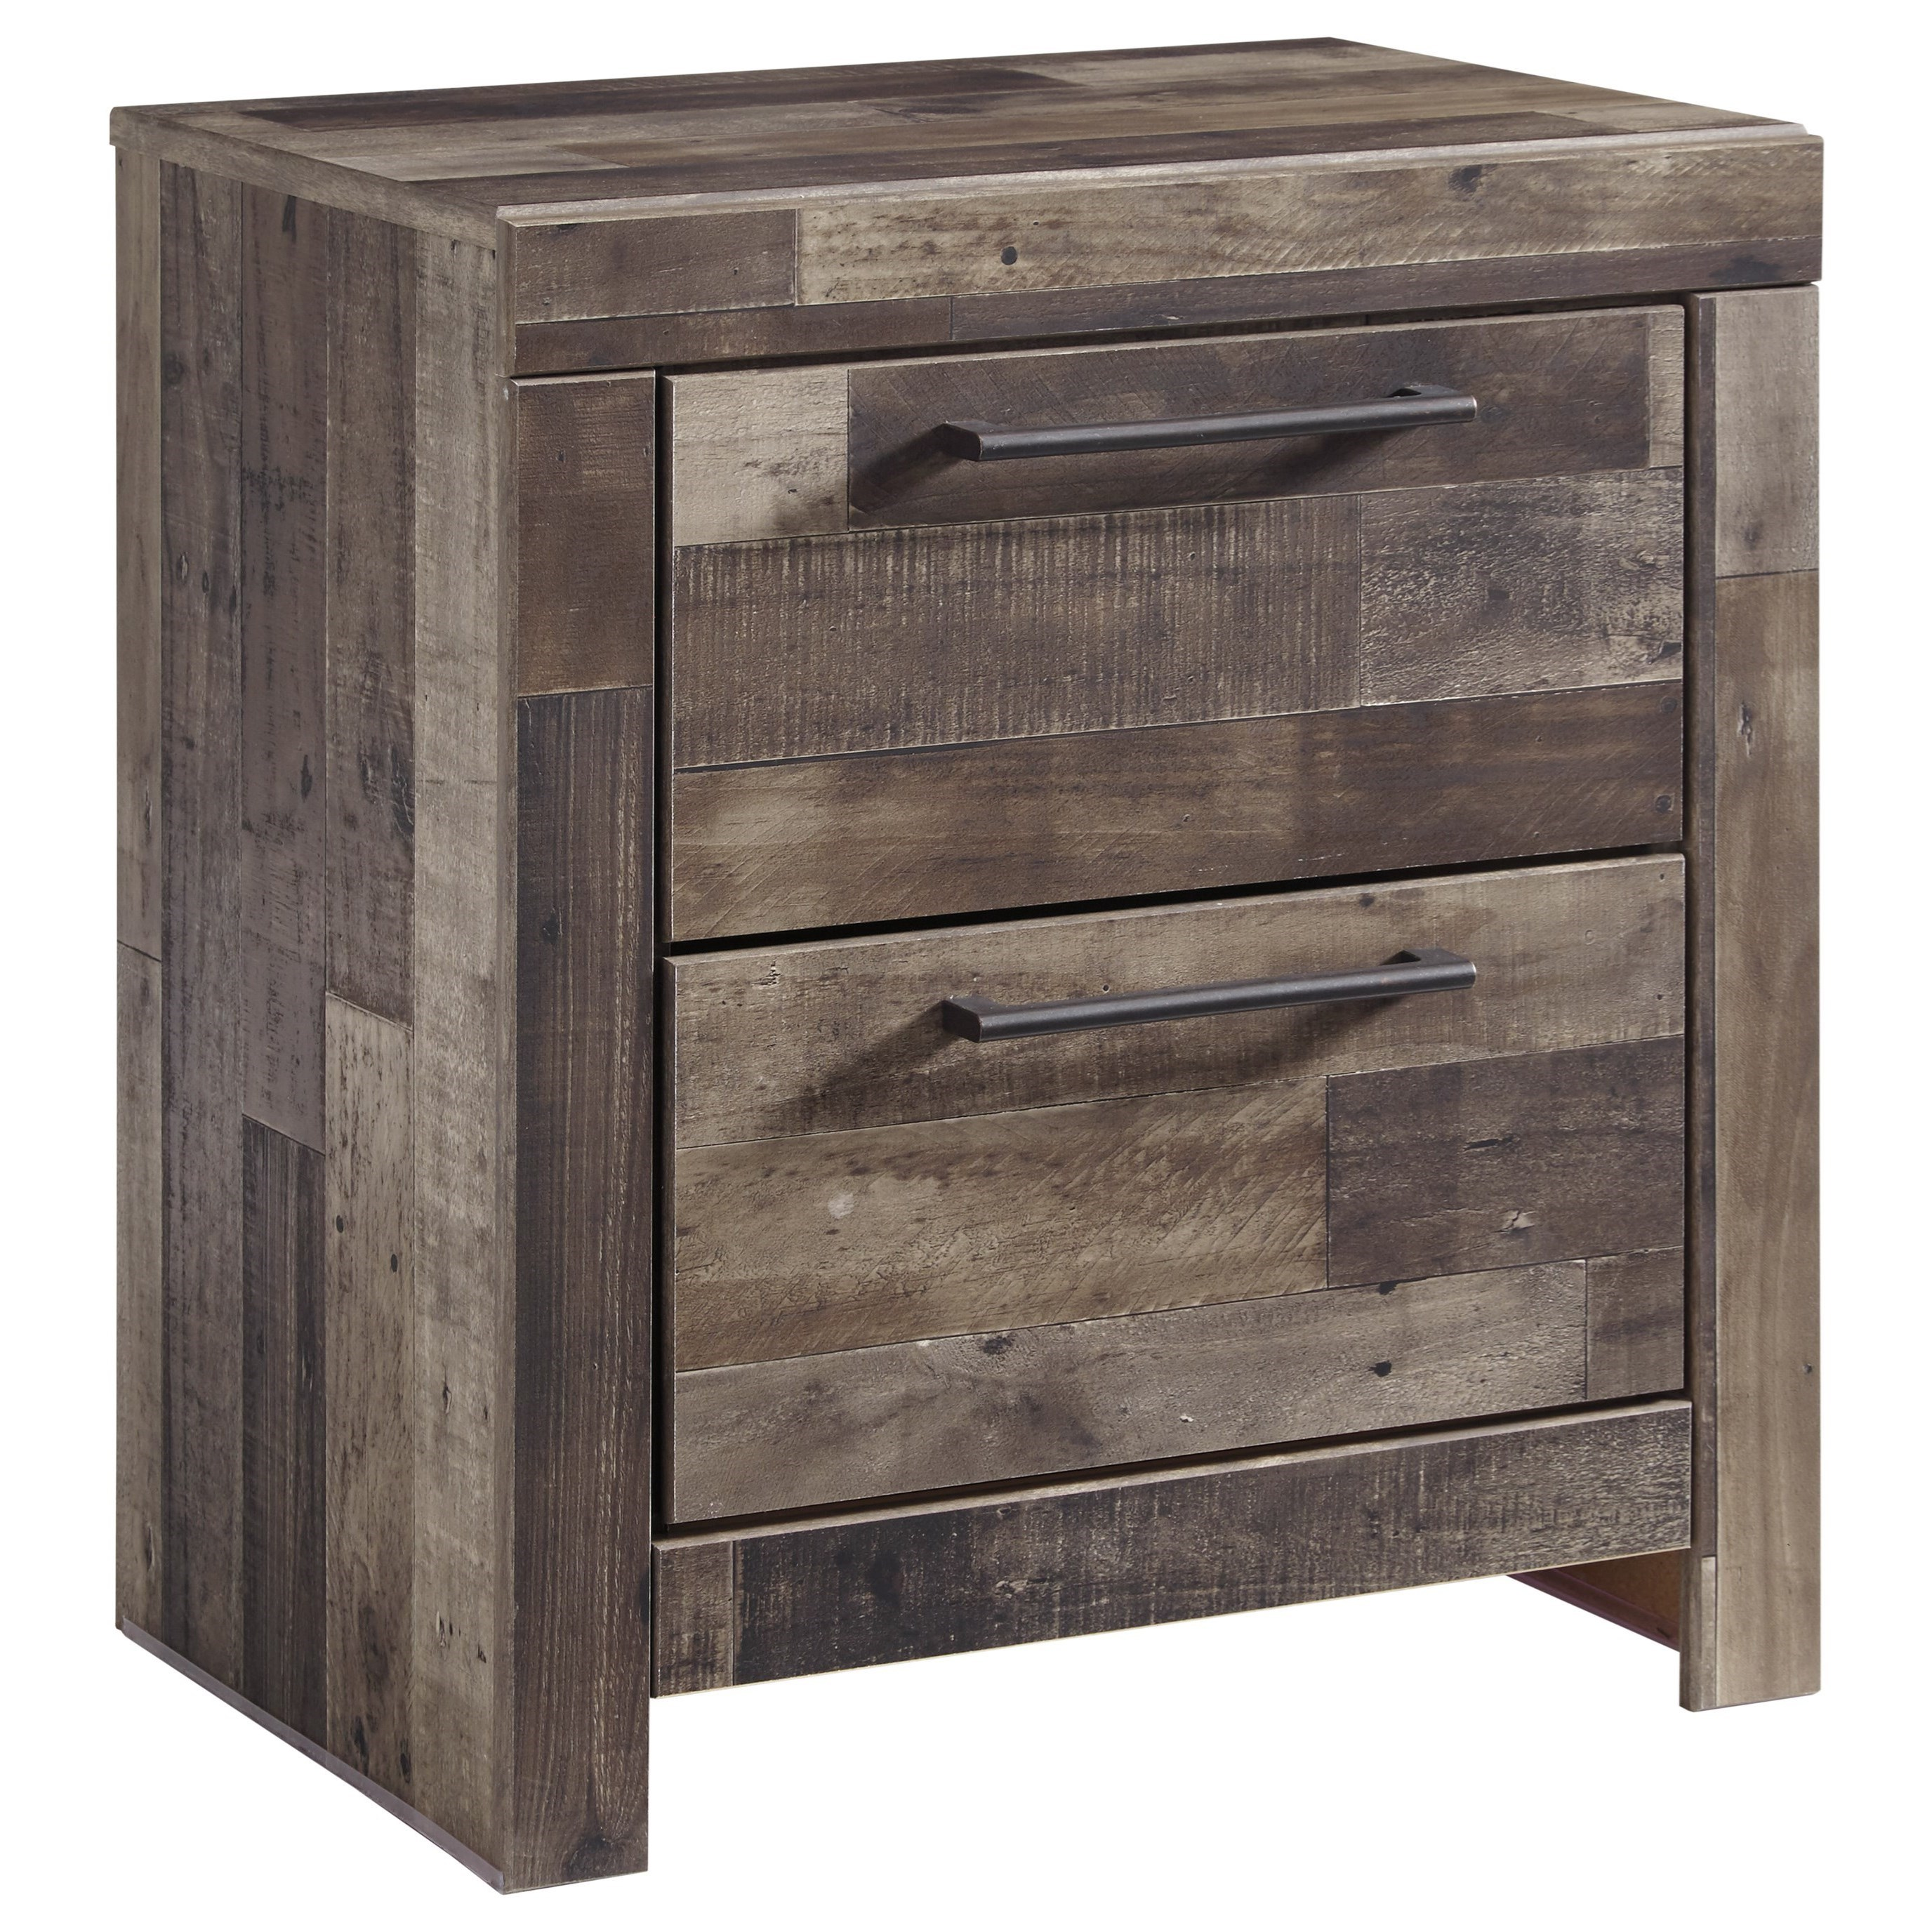 Benchcraft Derekson Two Drawer Night Stand With USB